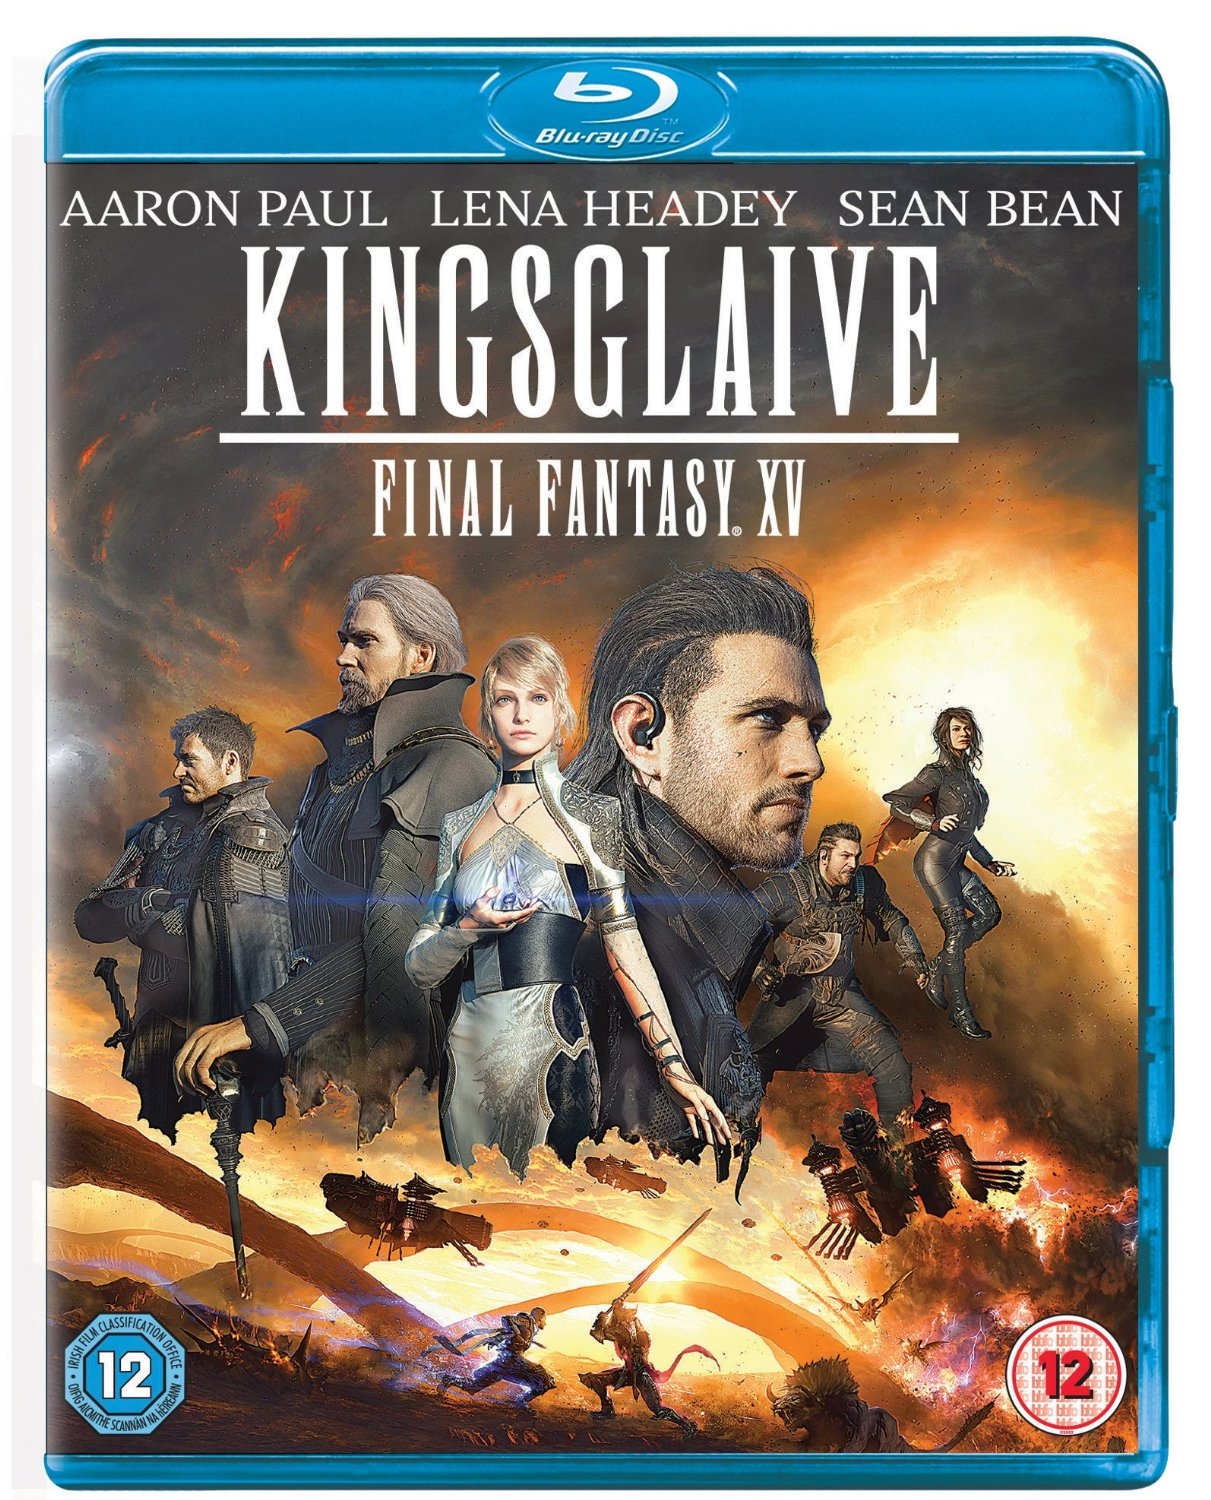 Kingsglaive Final Fantasy XV film review